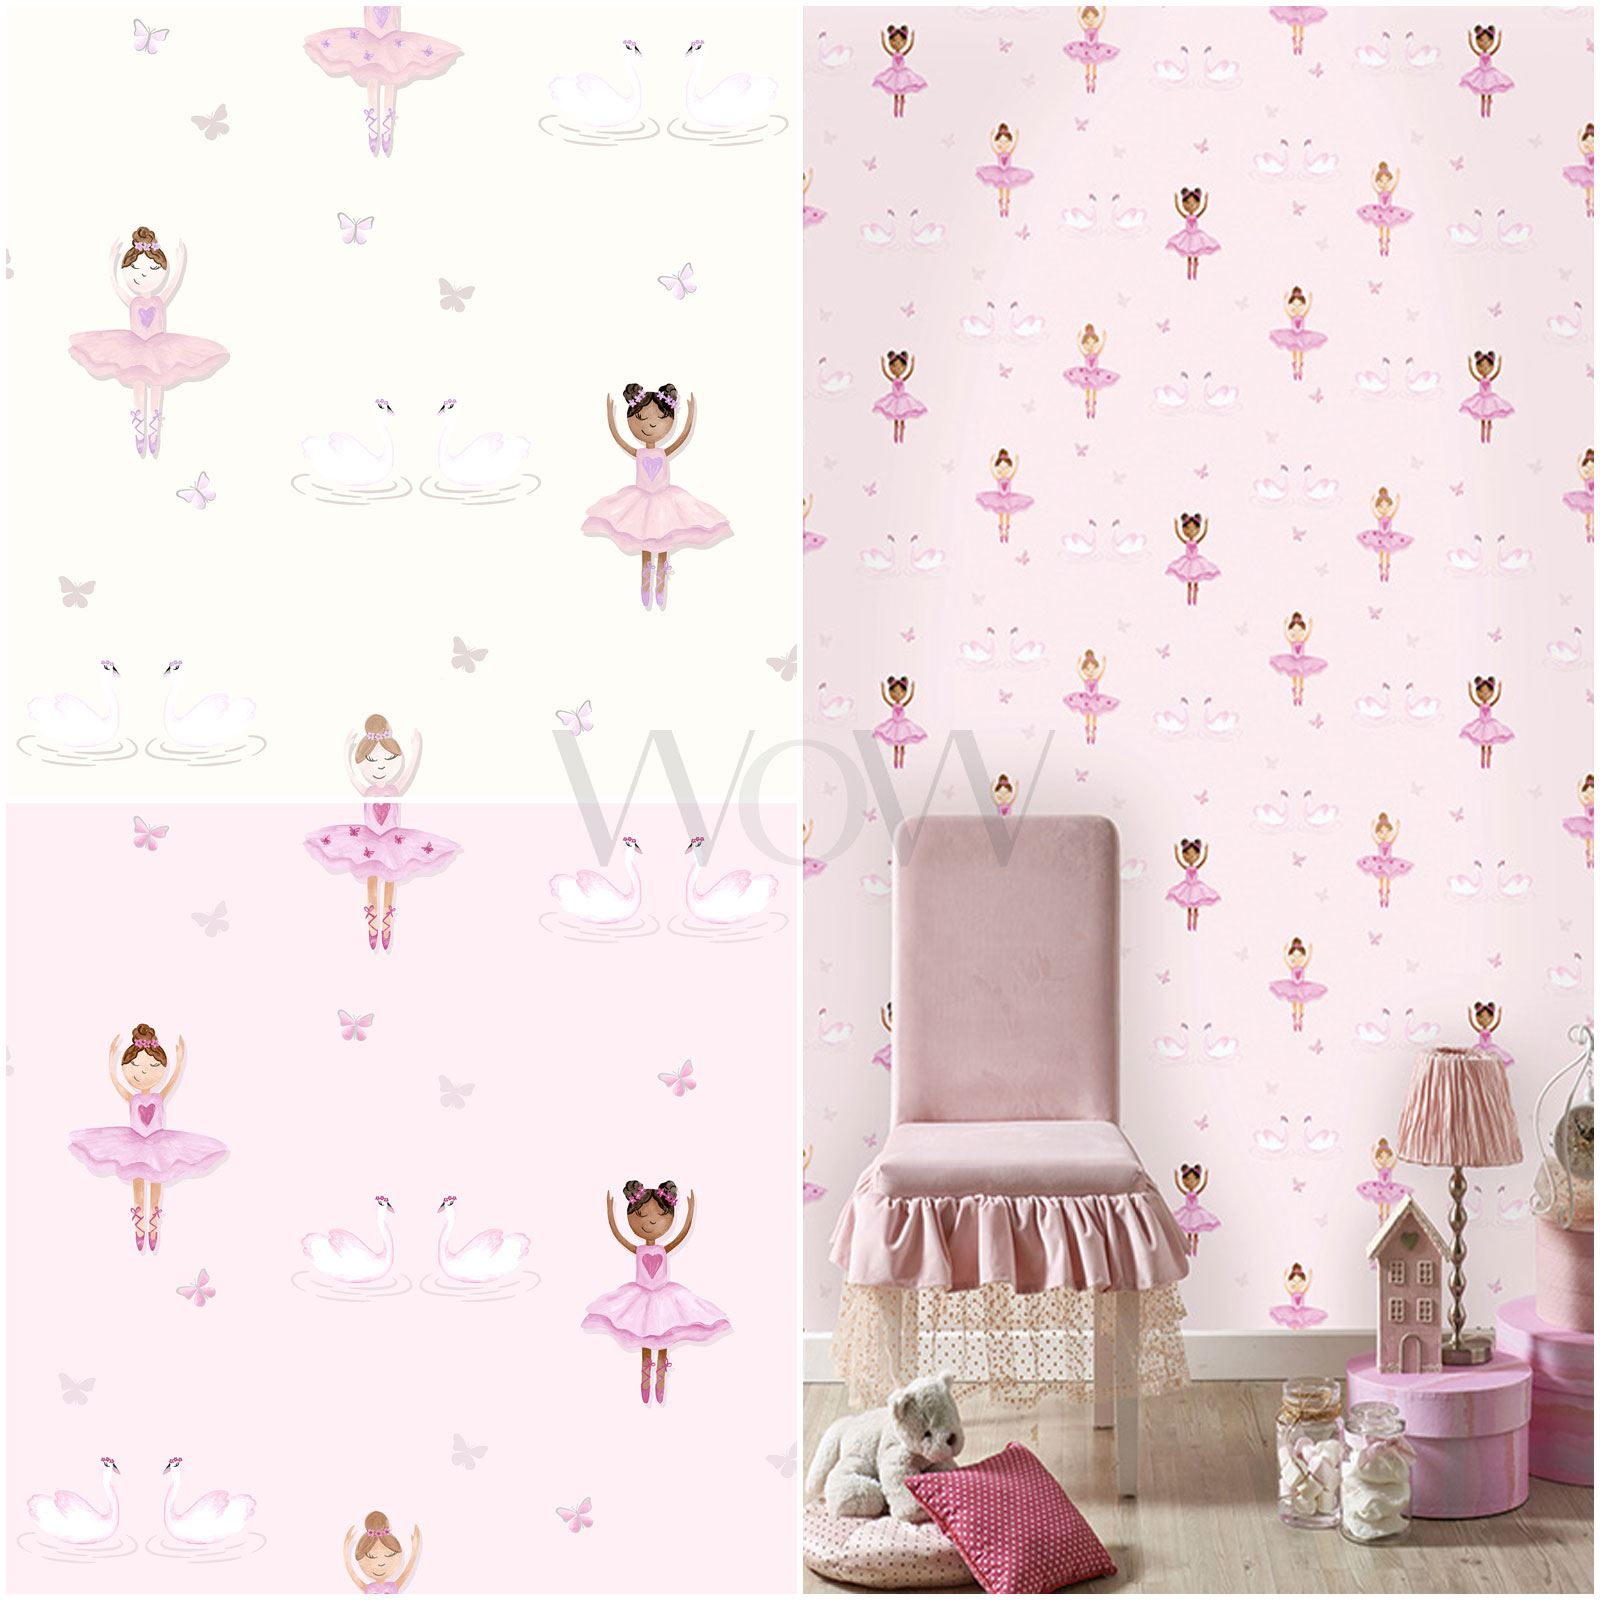 holden ballerina dancer glitter wallpaper kids girls